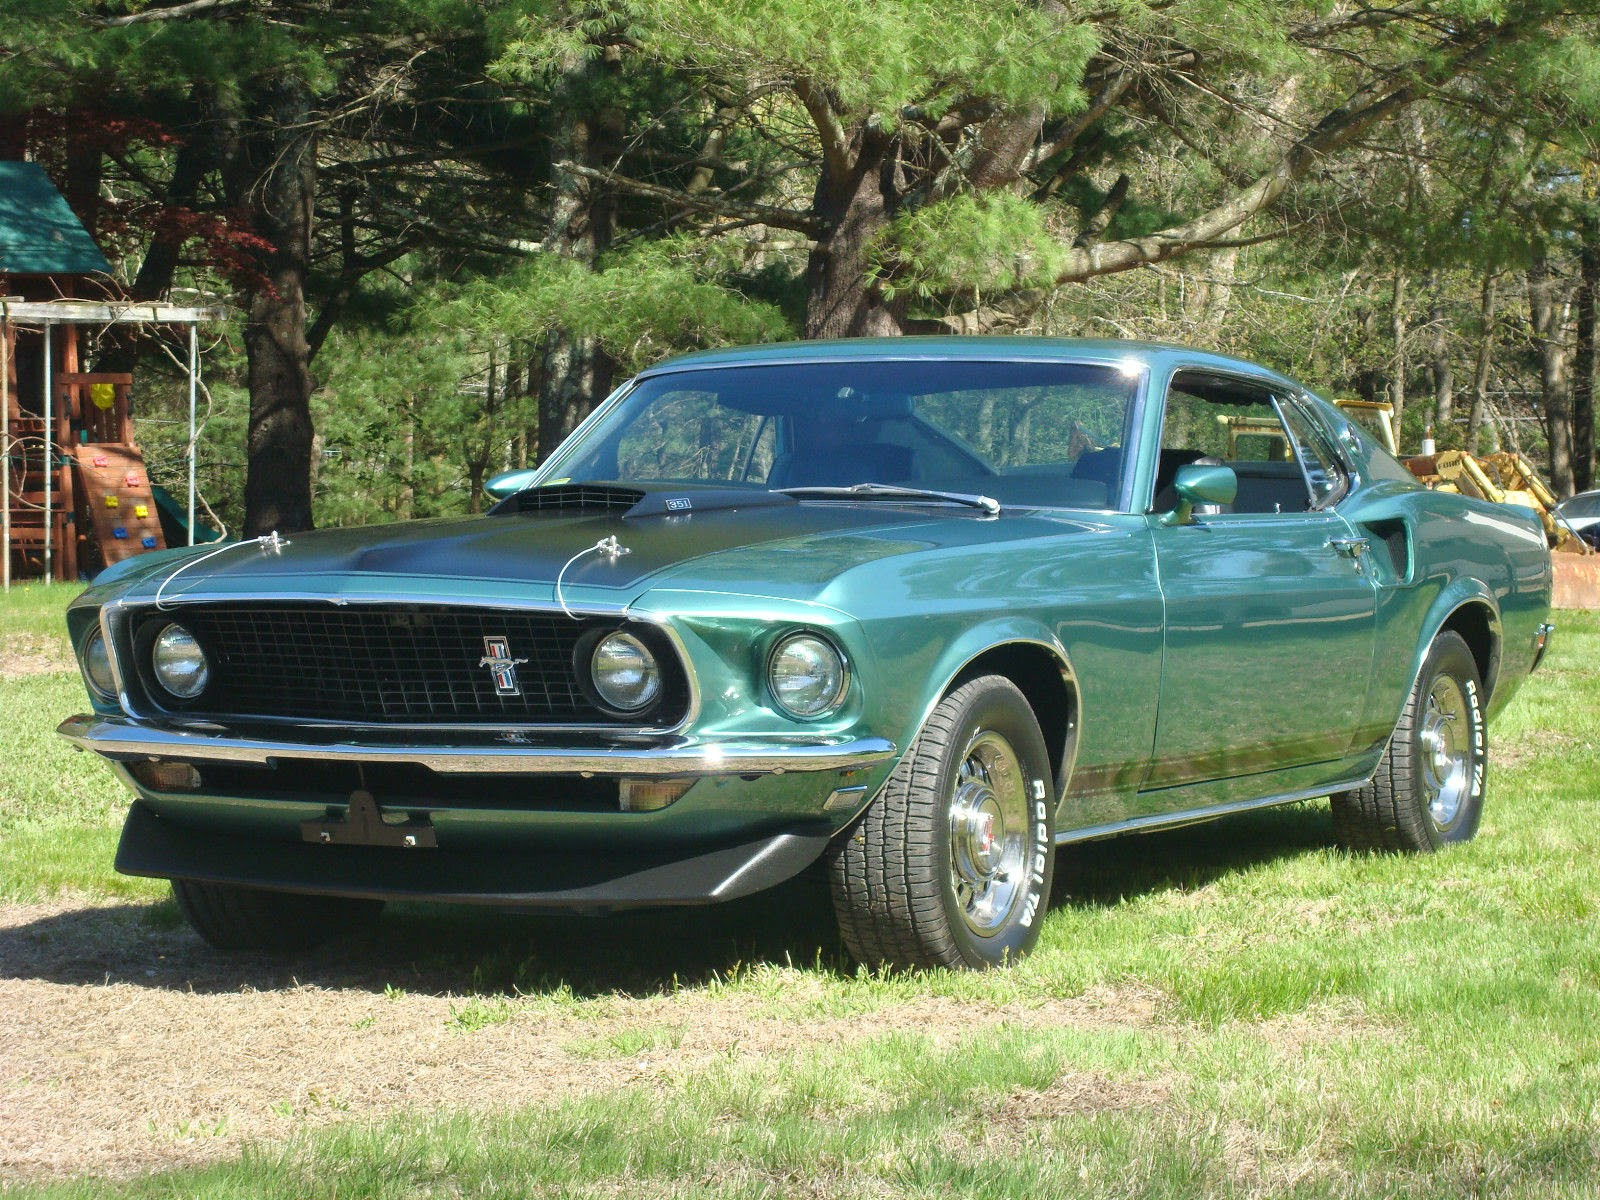 1969 mustang gt fastback rotisserie restored for sale american muscle cars